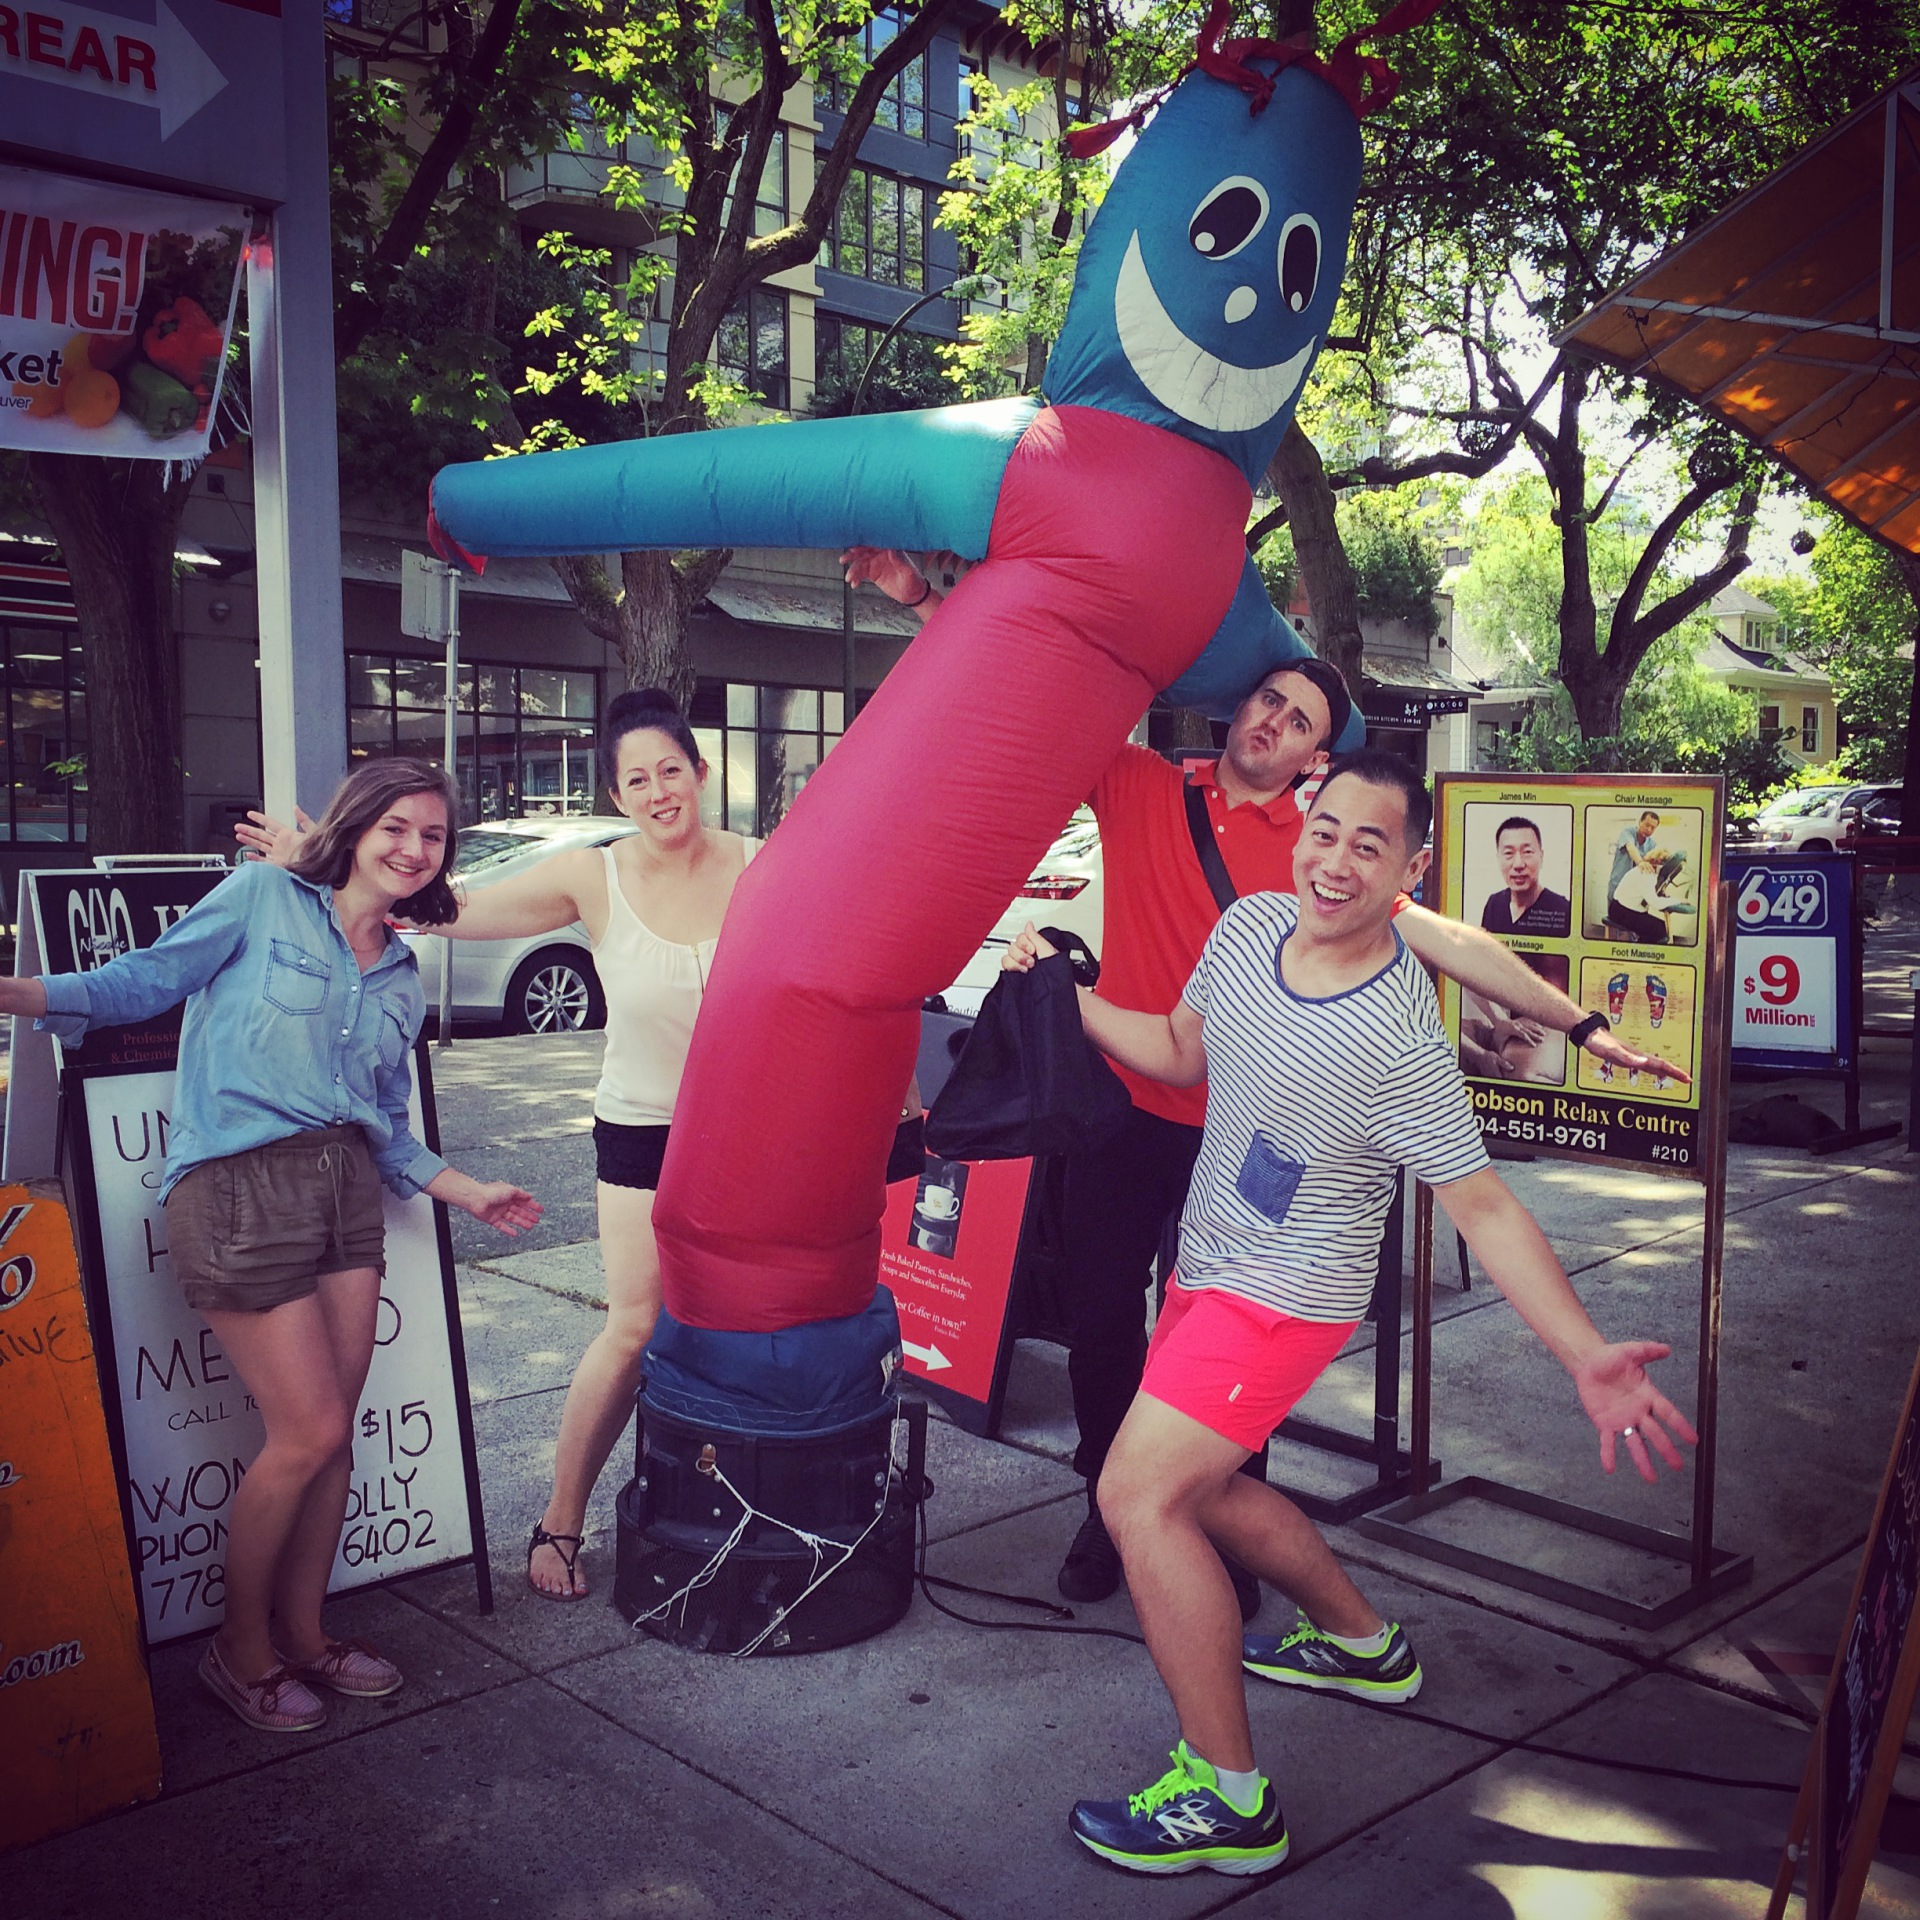 Taking a break during sidewalk brunch with this Wacky Inflatable Tube Man.